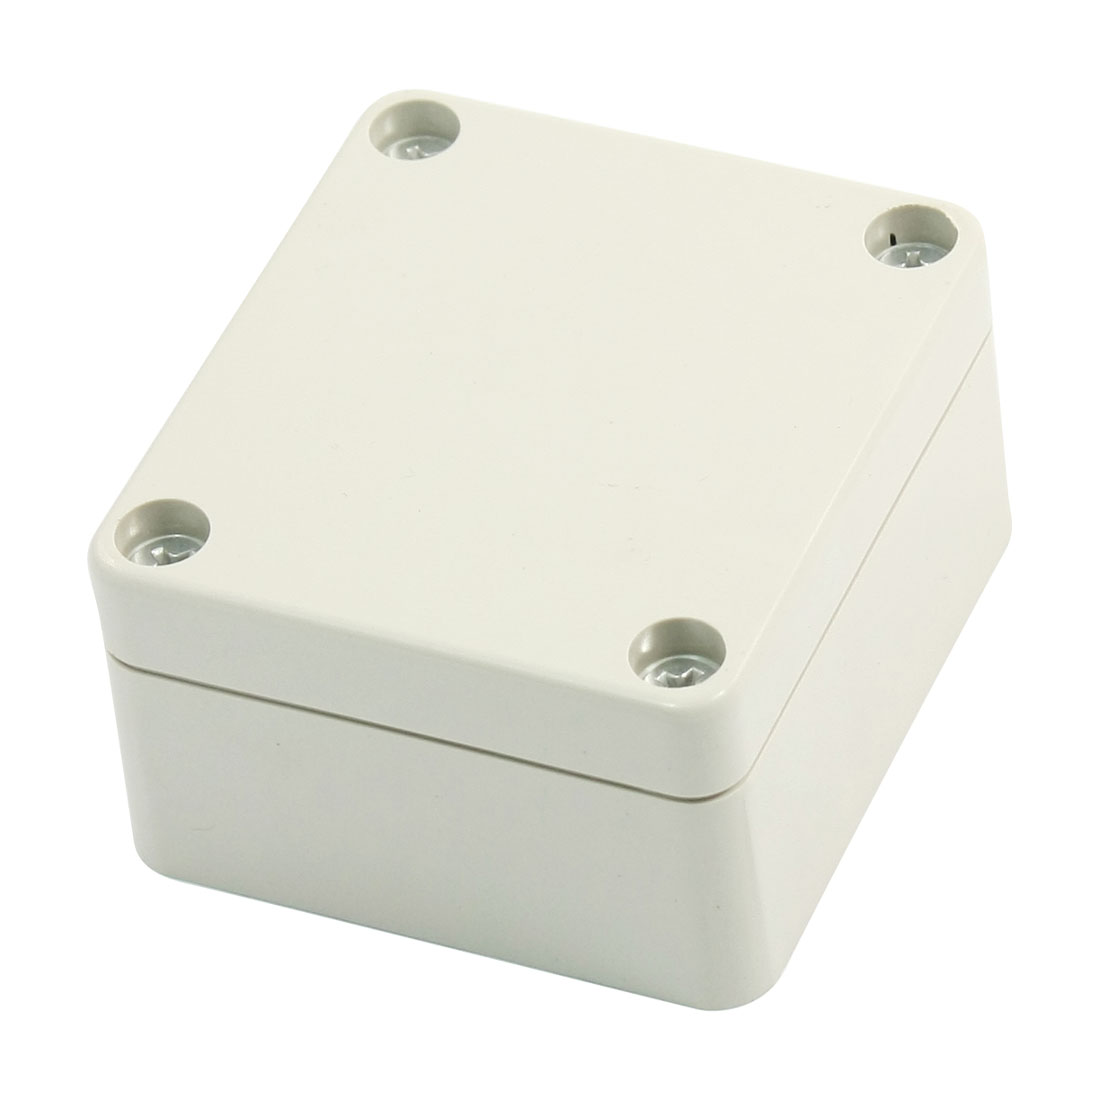 65mmx60mmx36mm-Cable-Connect-Waterproof-Plastic-Case-Junction-Box